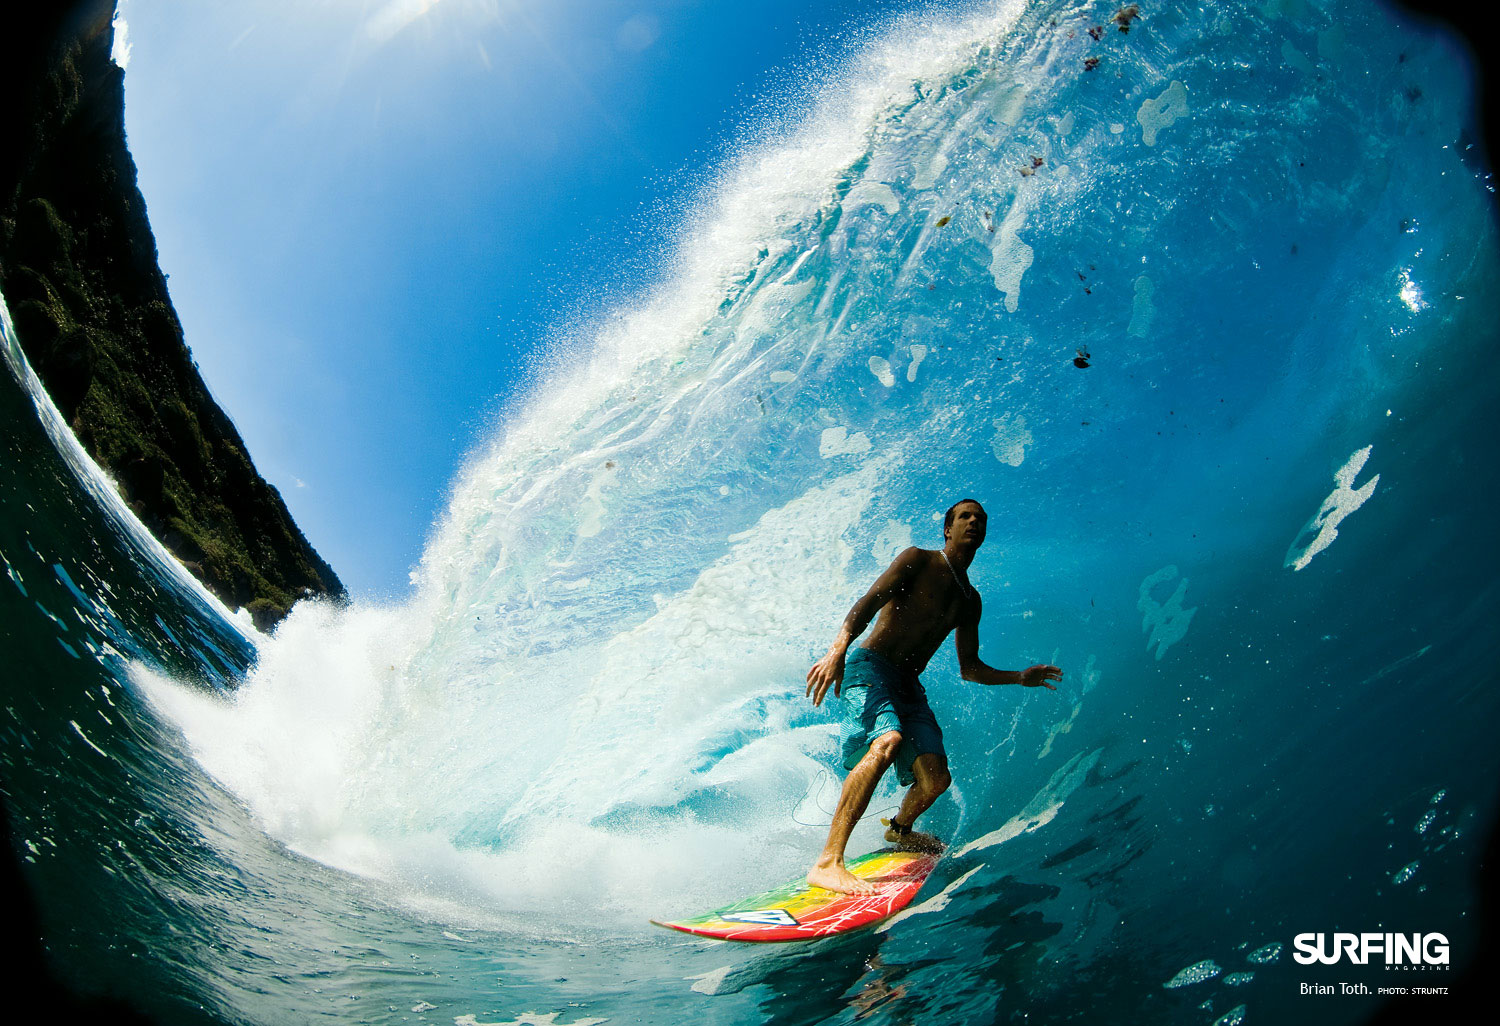 34 Surfing Hd Wallpapers   ImgHD Browse and Download Images and 1500x1026